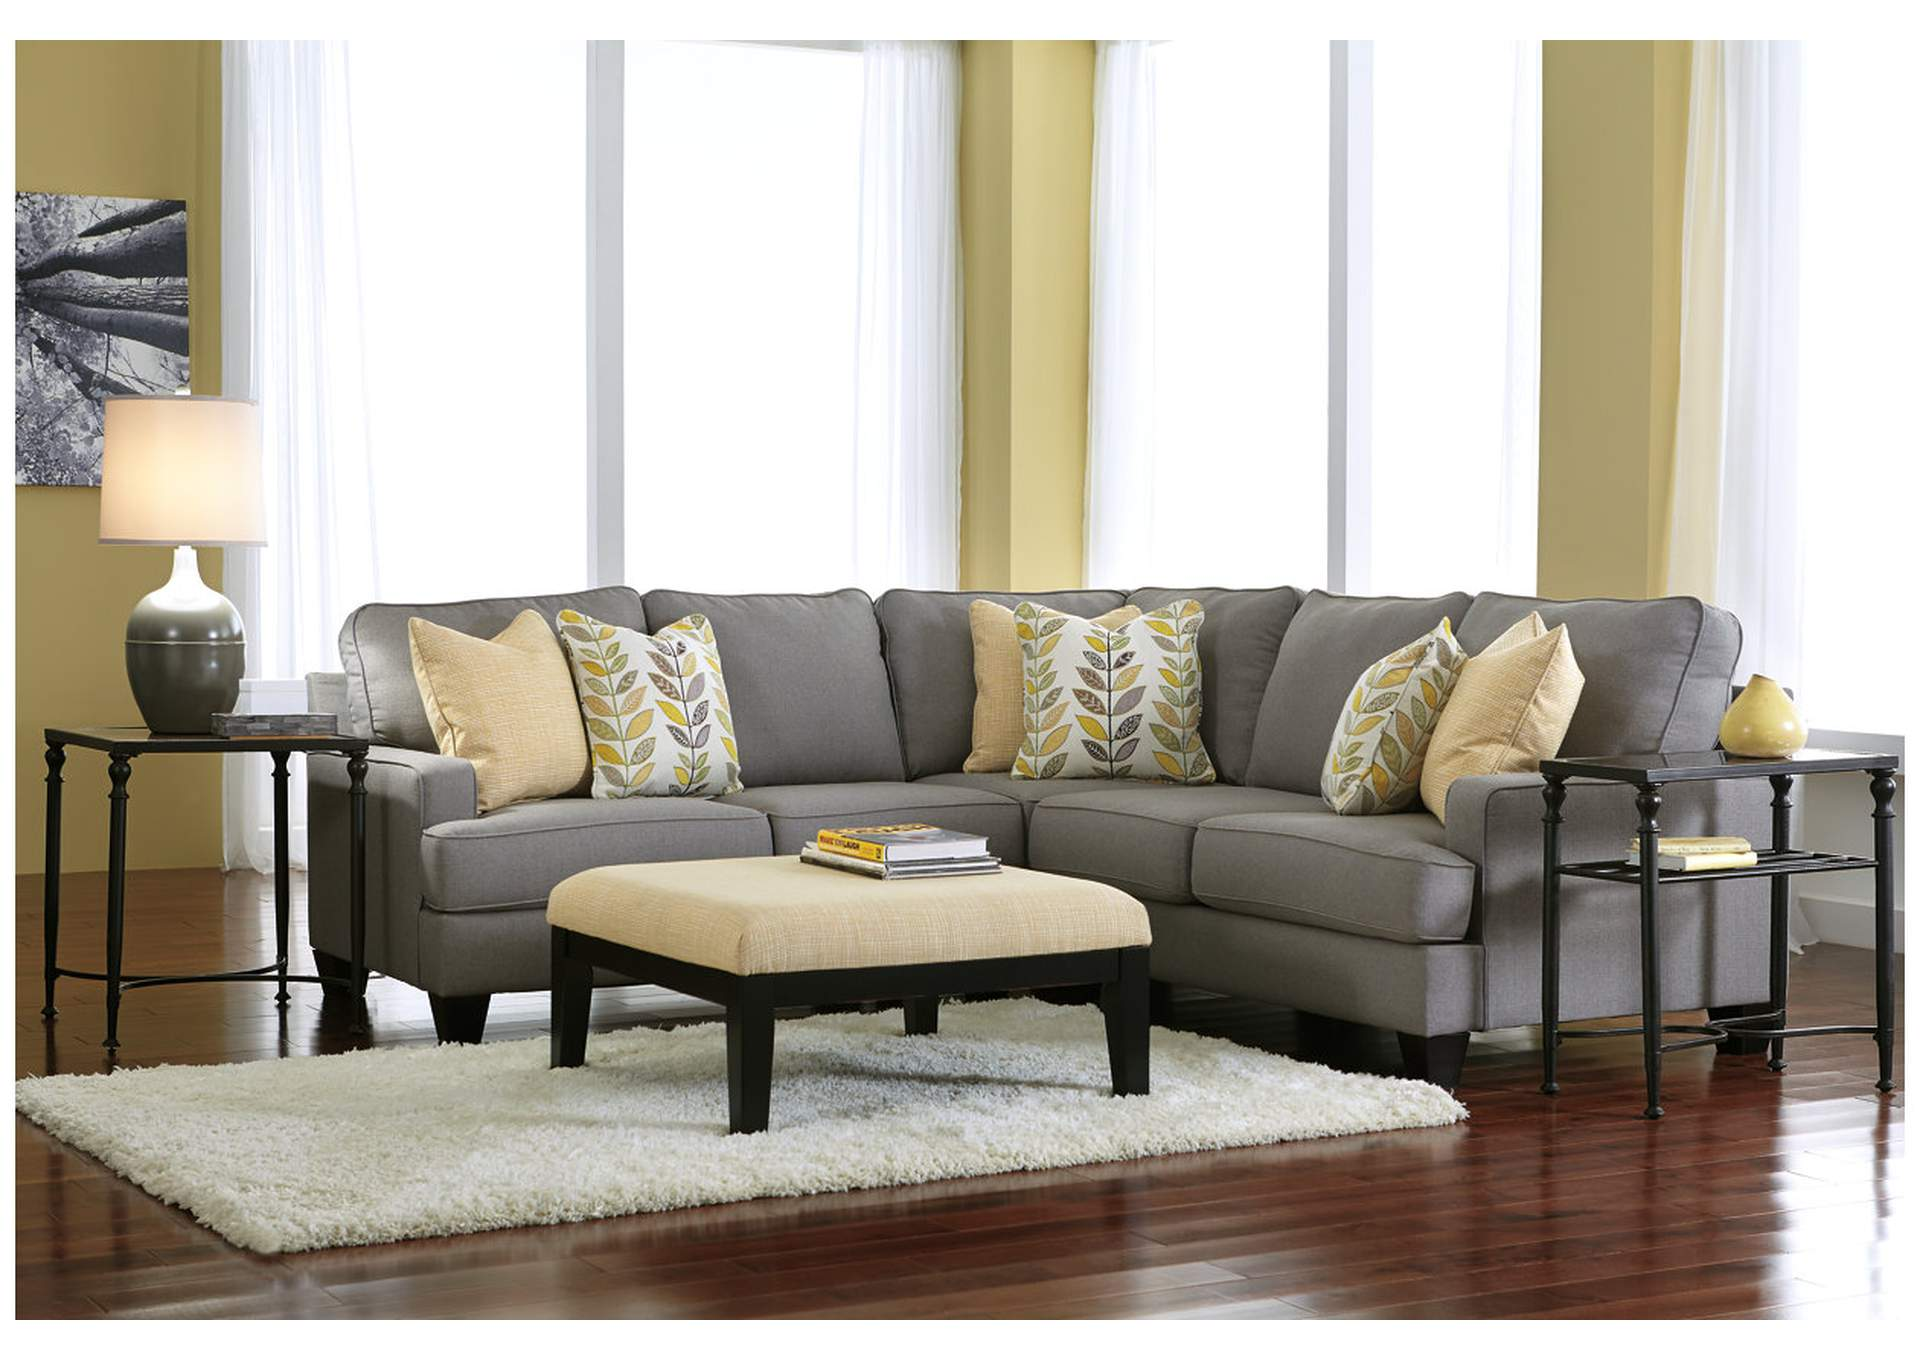 Chamberly Alloy Sectional,Signature Design by Ashley